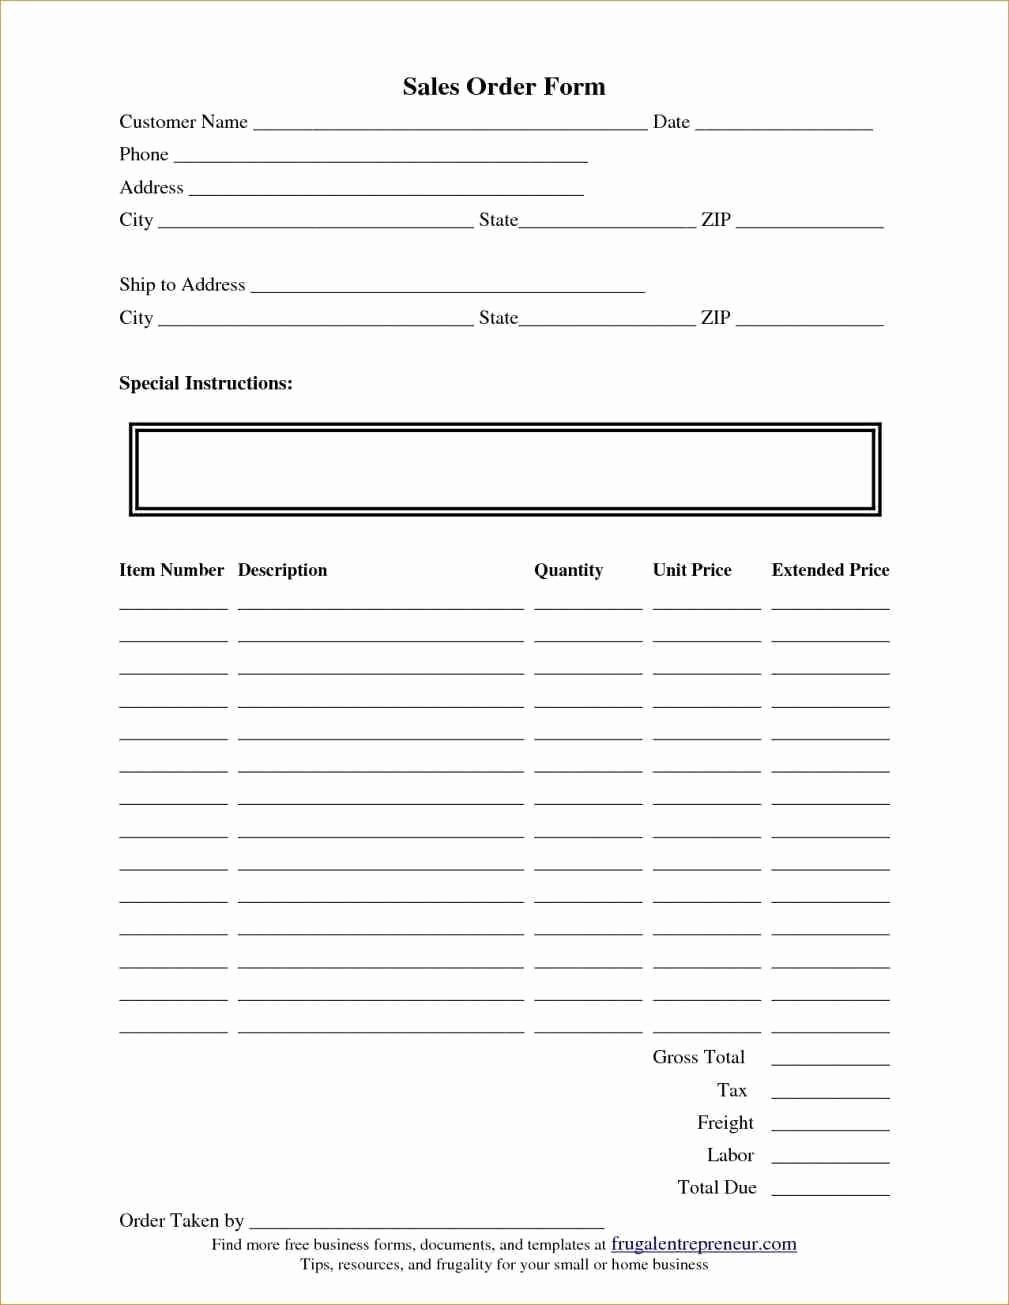 Simple order form Template Elegant Local Business and Need All the Relevant Details Like Name